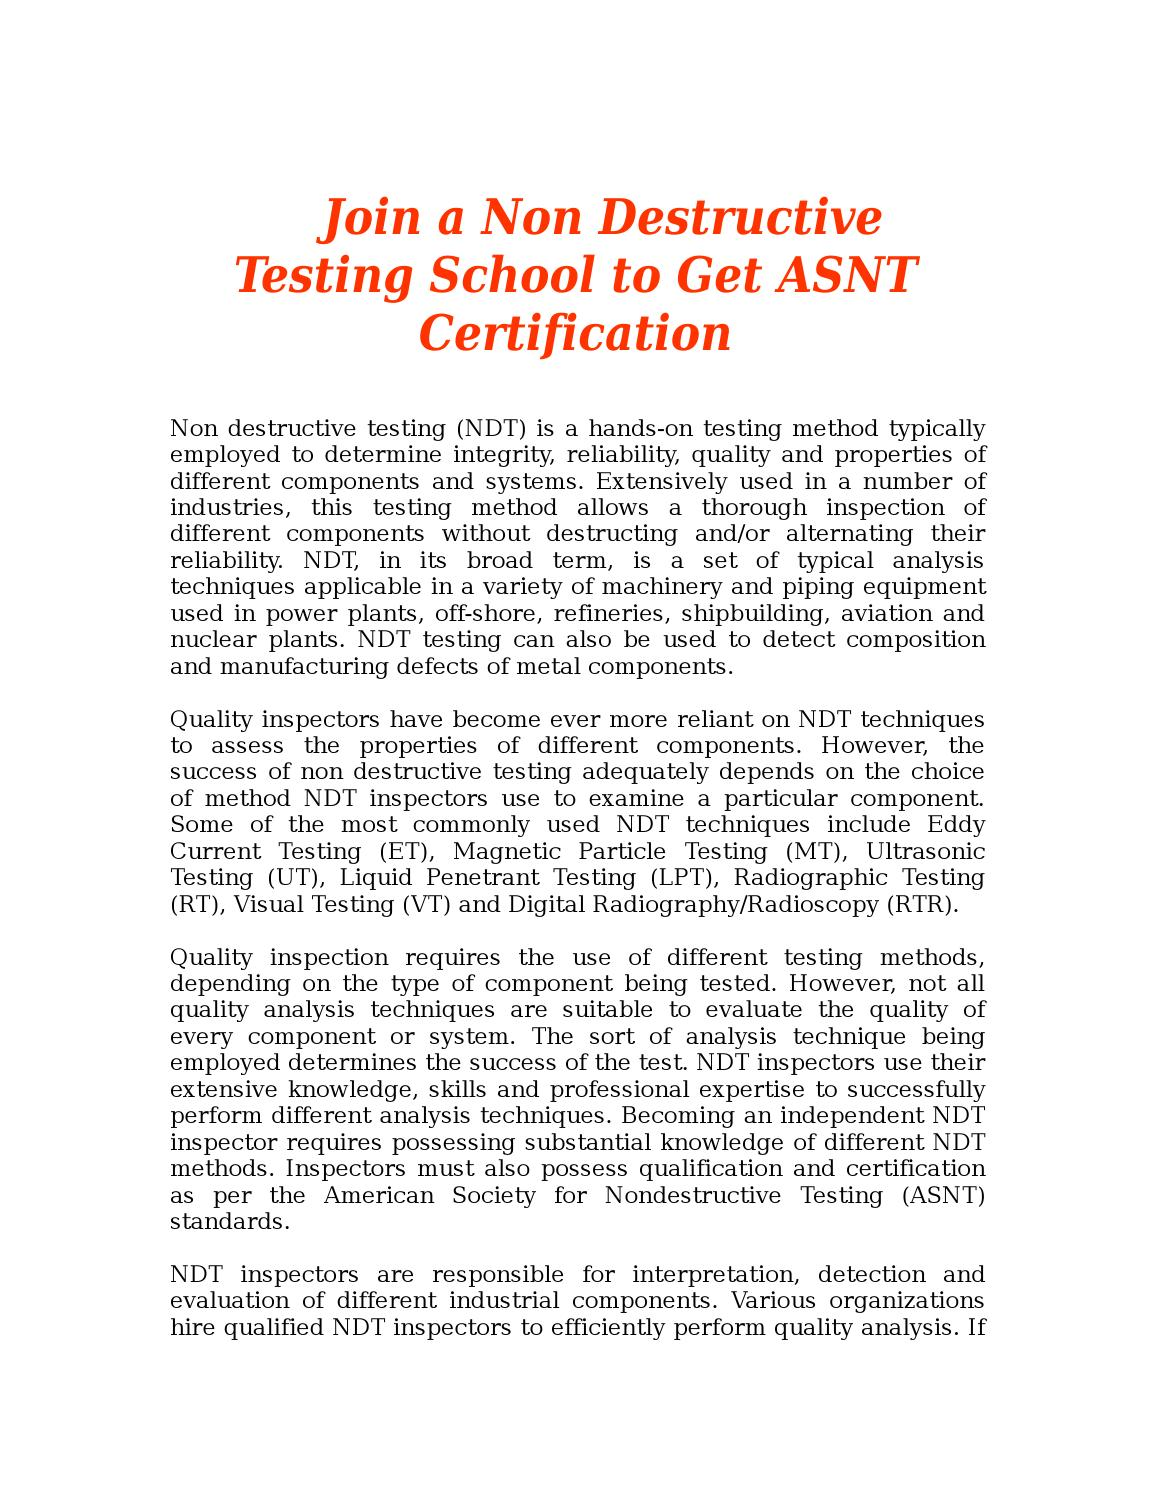 Join A Non Destructive Testing School To Get Asnt Certification By